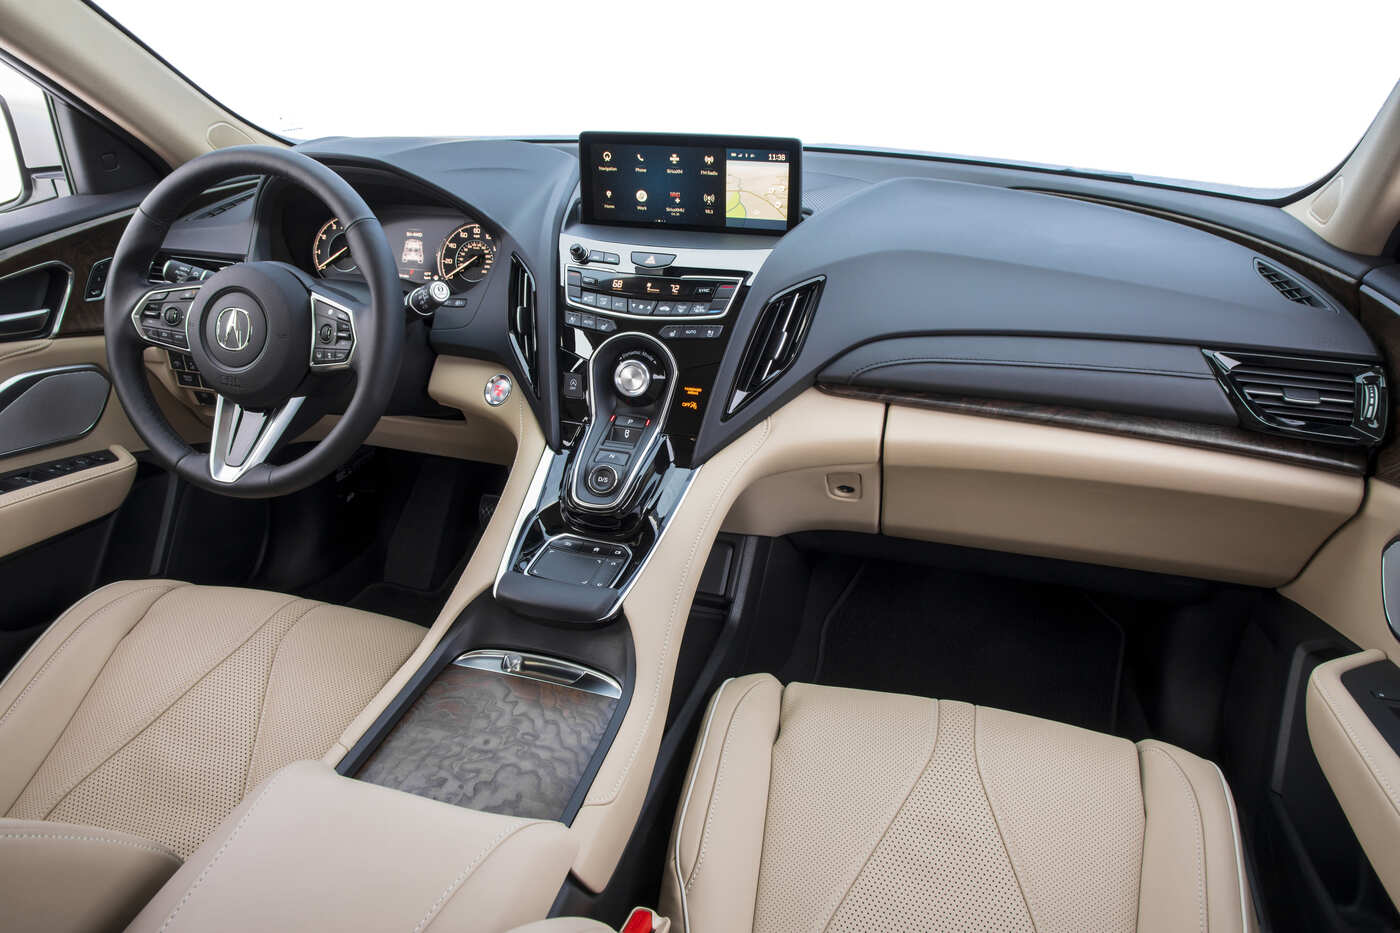 45 Concept of When Will 2020 Acura Rdx Be Released Release with When Will 2020 Acura Rdx Be Released